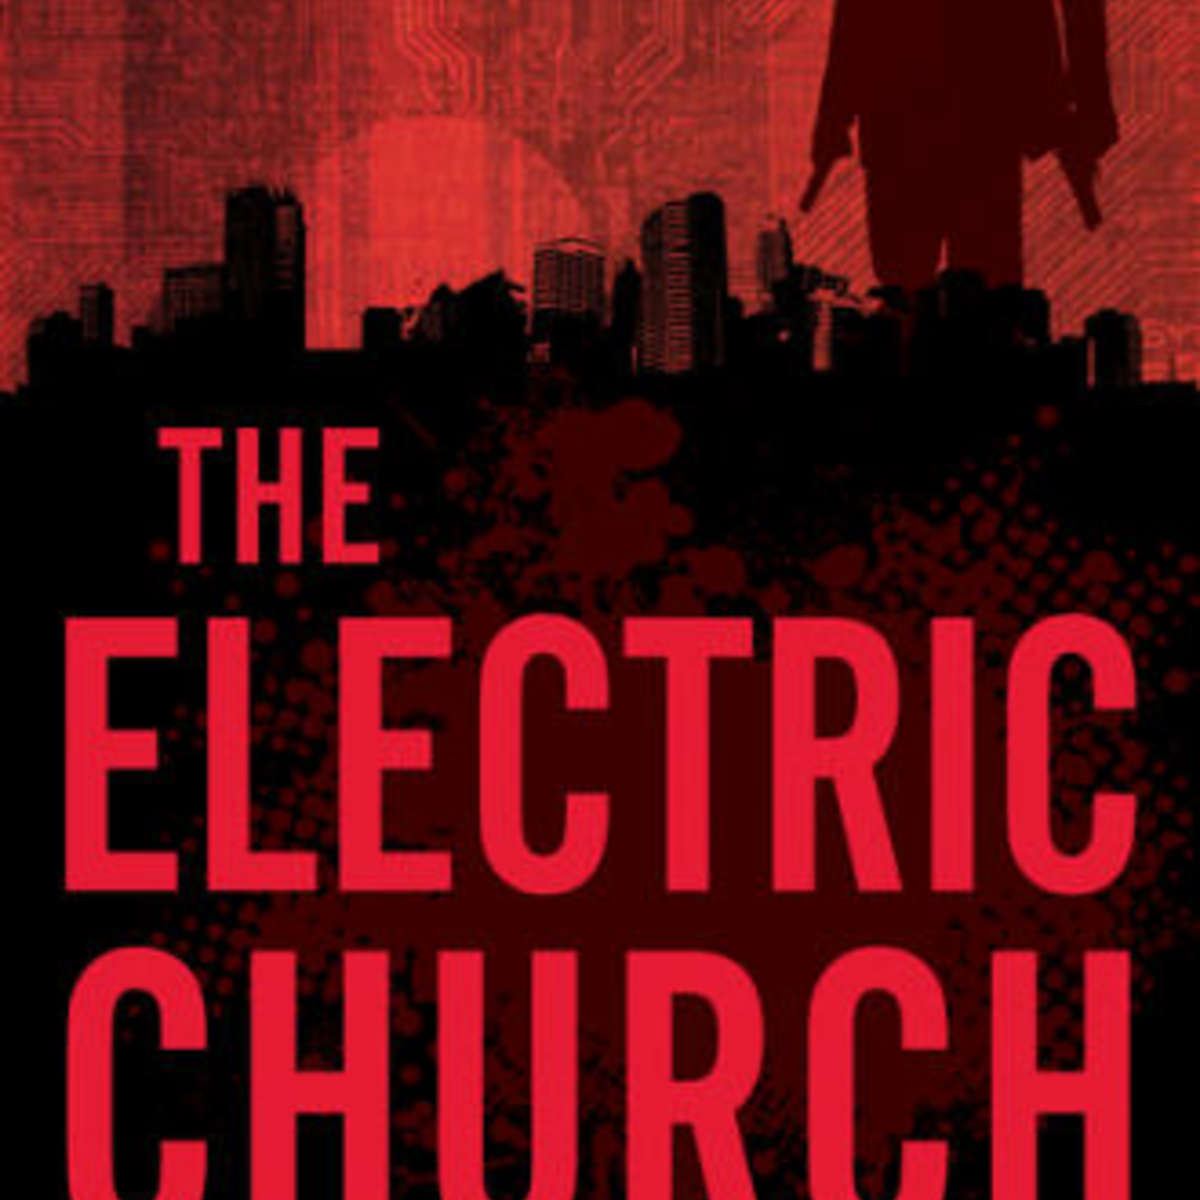 electric_church.jpg